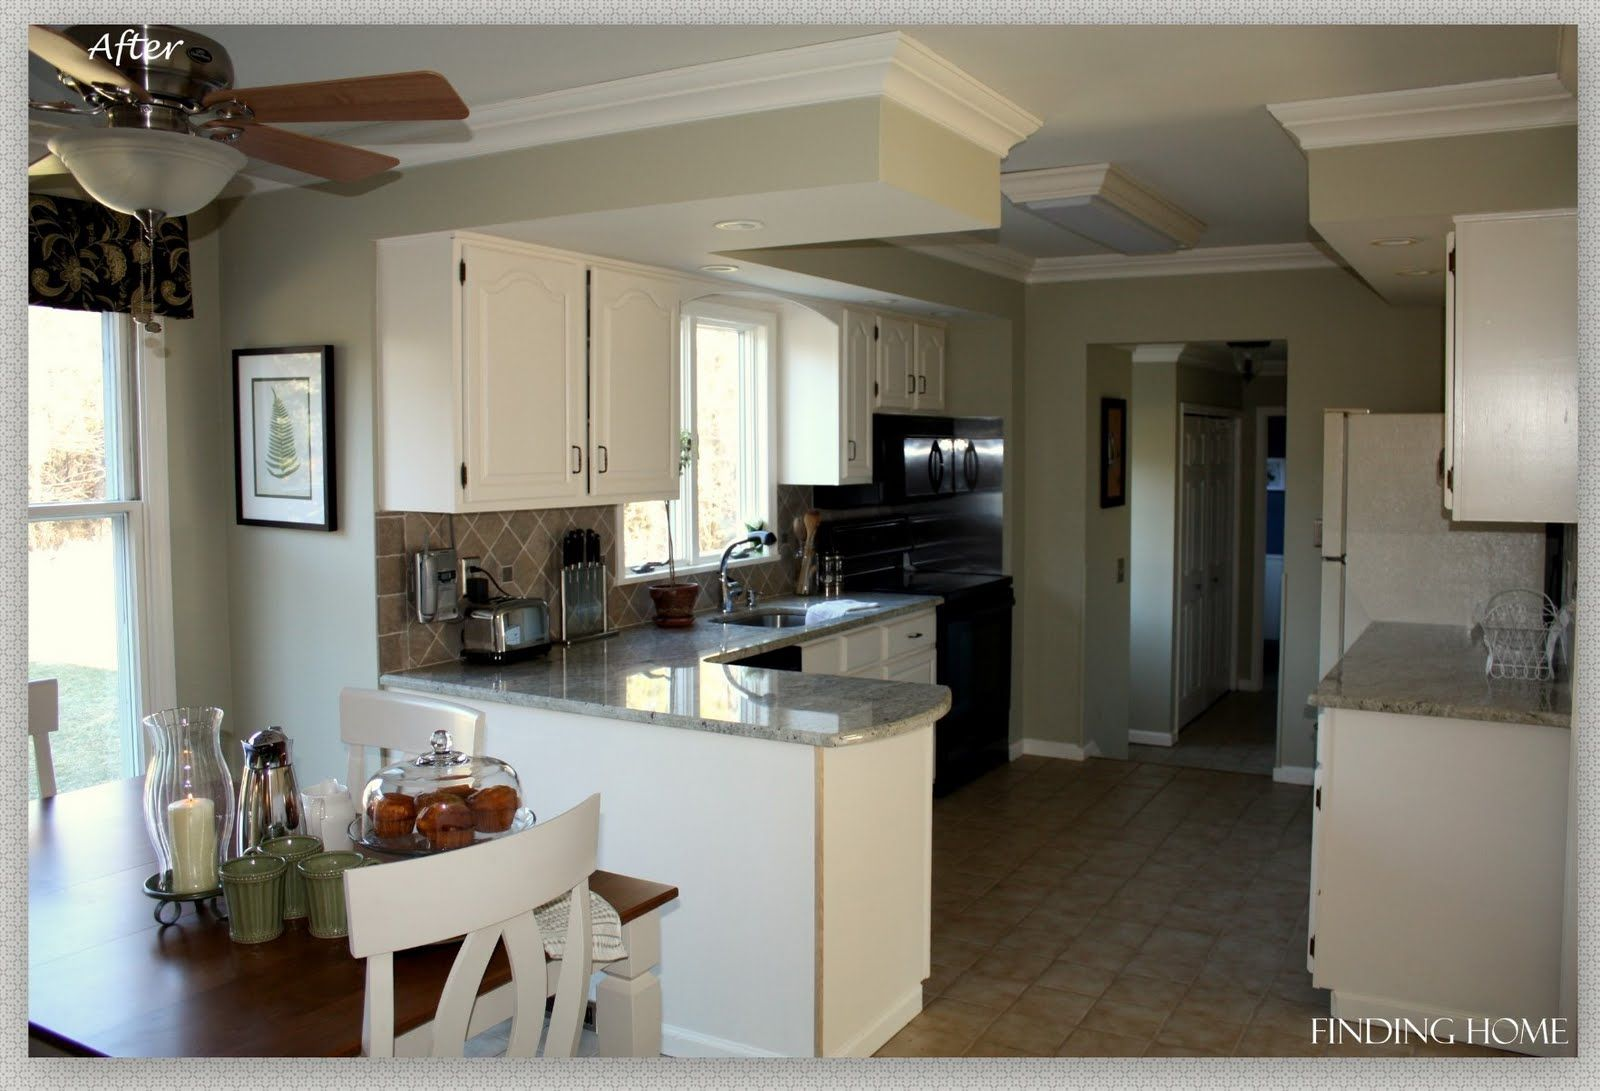 choosing colors for kitchen walls paint colors for kitchen walls